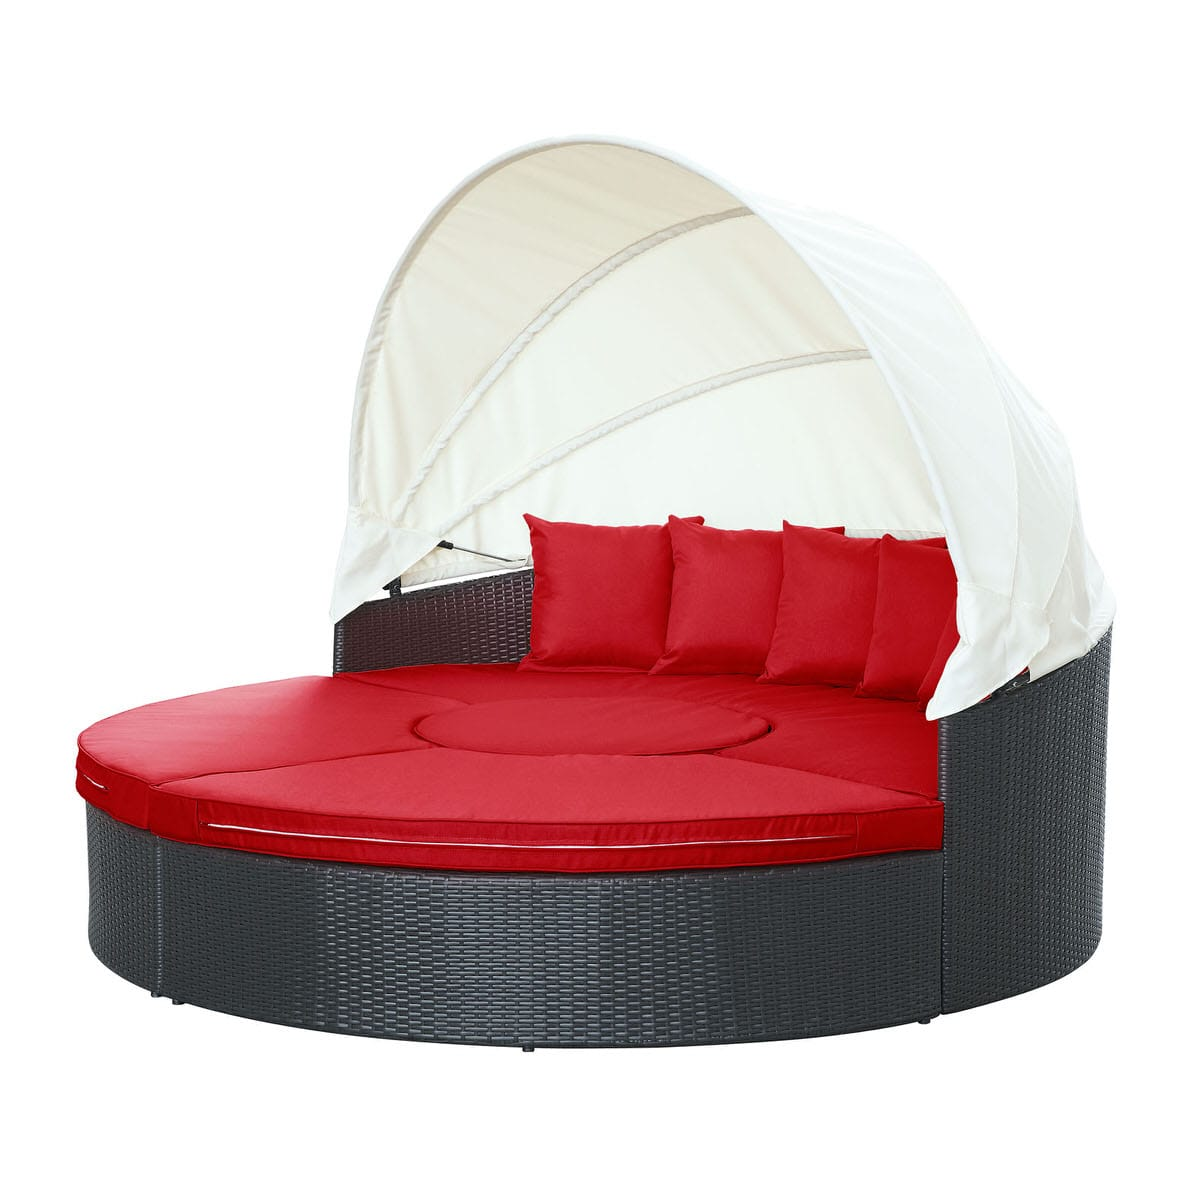 quest canopy outdoor patio daybed espresso red by modern living rh futonland com DIY Outdoor Daybed with Canopy Outdoor Daybed Mattress